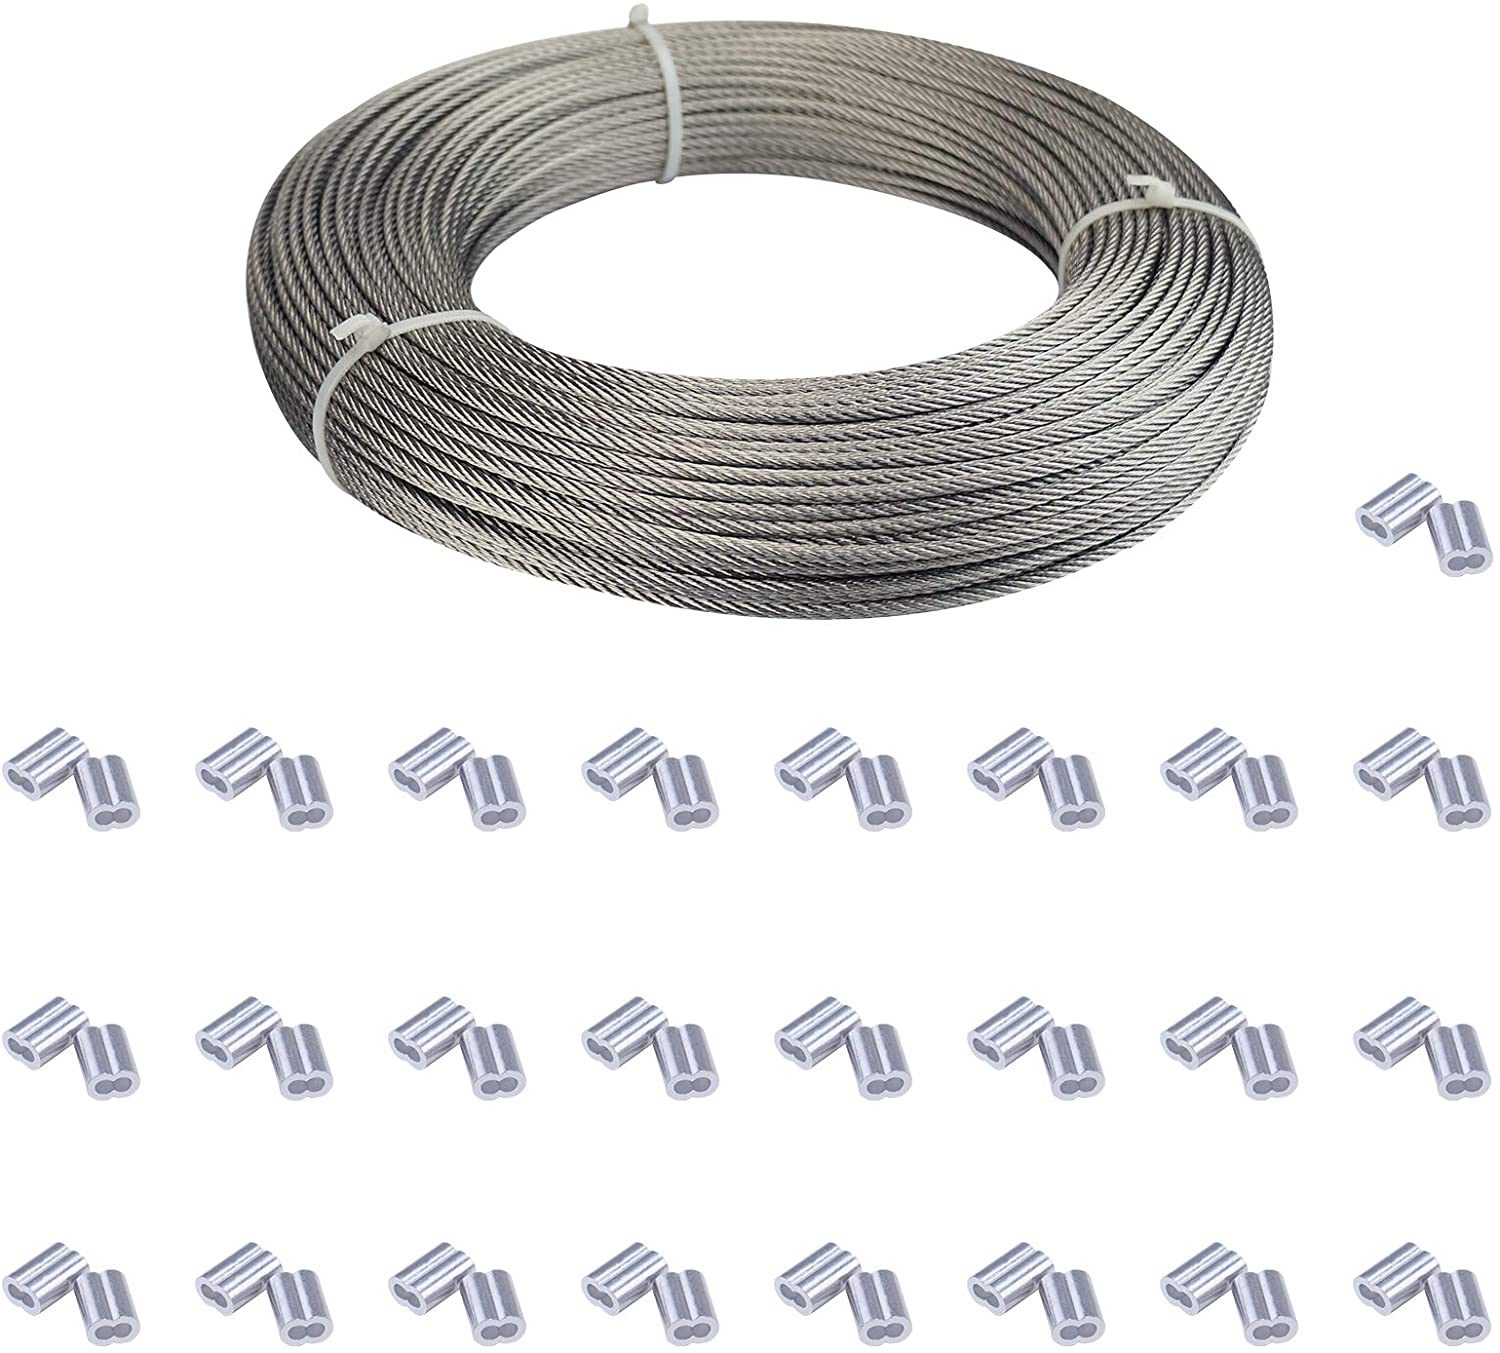 Muzata Stainless Aircraft Steel Wire Rope Cable for Railing,Decking, DIY Balustrade, 1/8Inch,7x7,165Feet WR01,Series WP1,Aluminum Loop Sleeve 50PCS